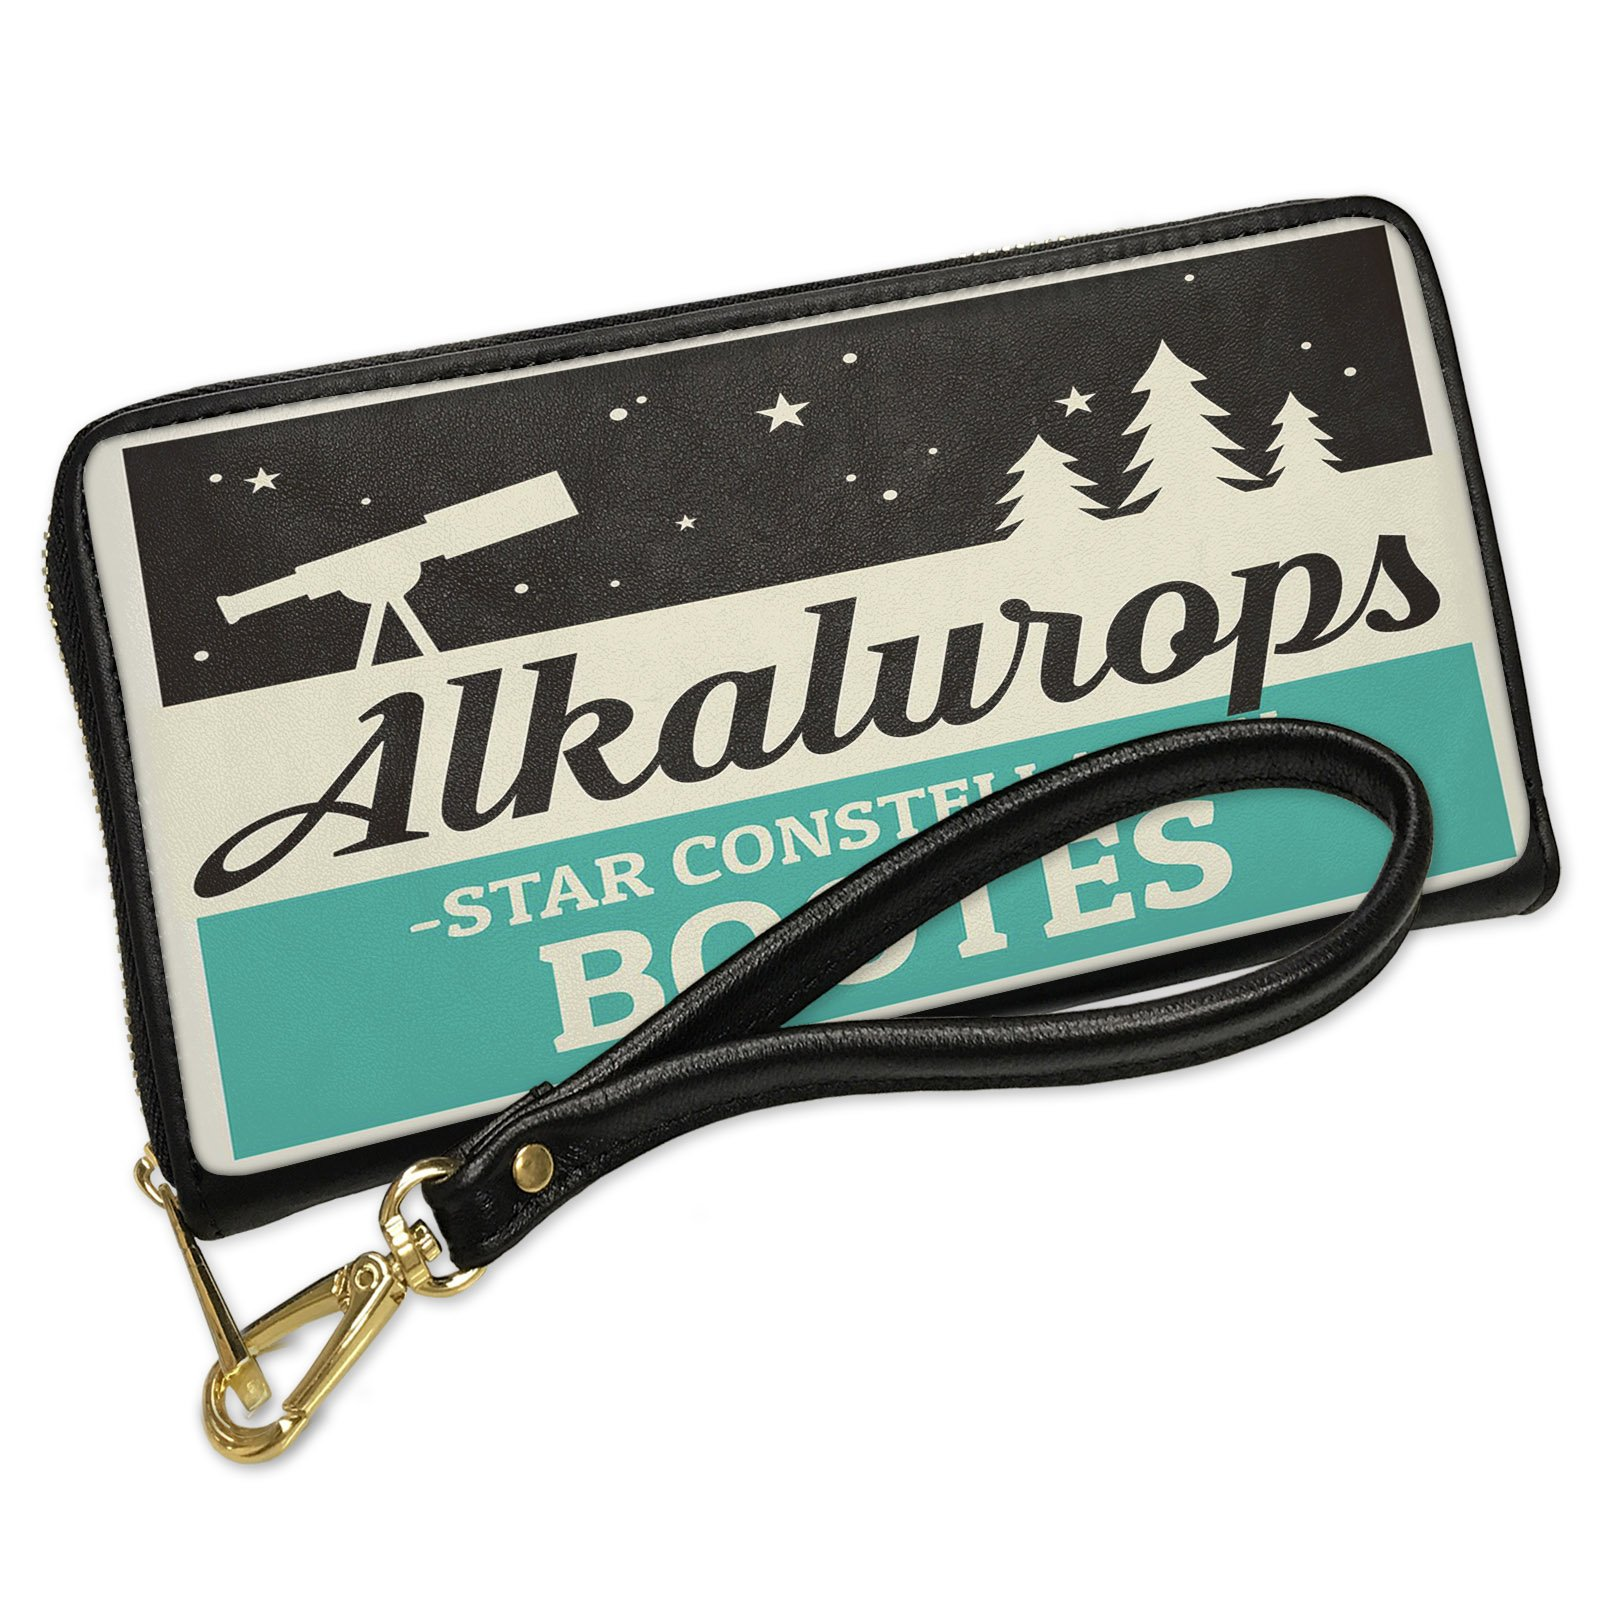 Wallet Clutch Star Constellation Name Bootes - Alkalurops with Removable Wristlet Strap Neonblond